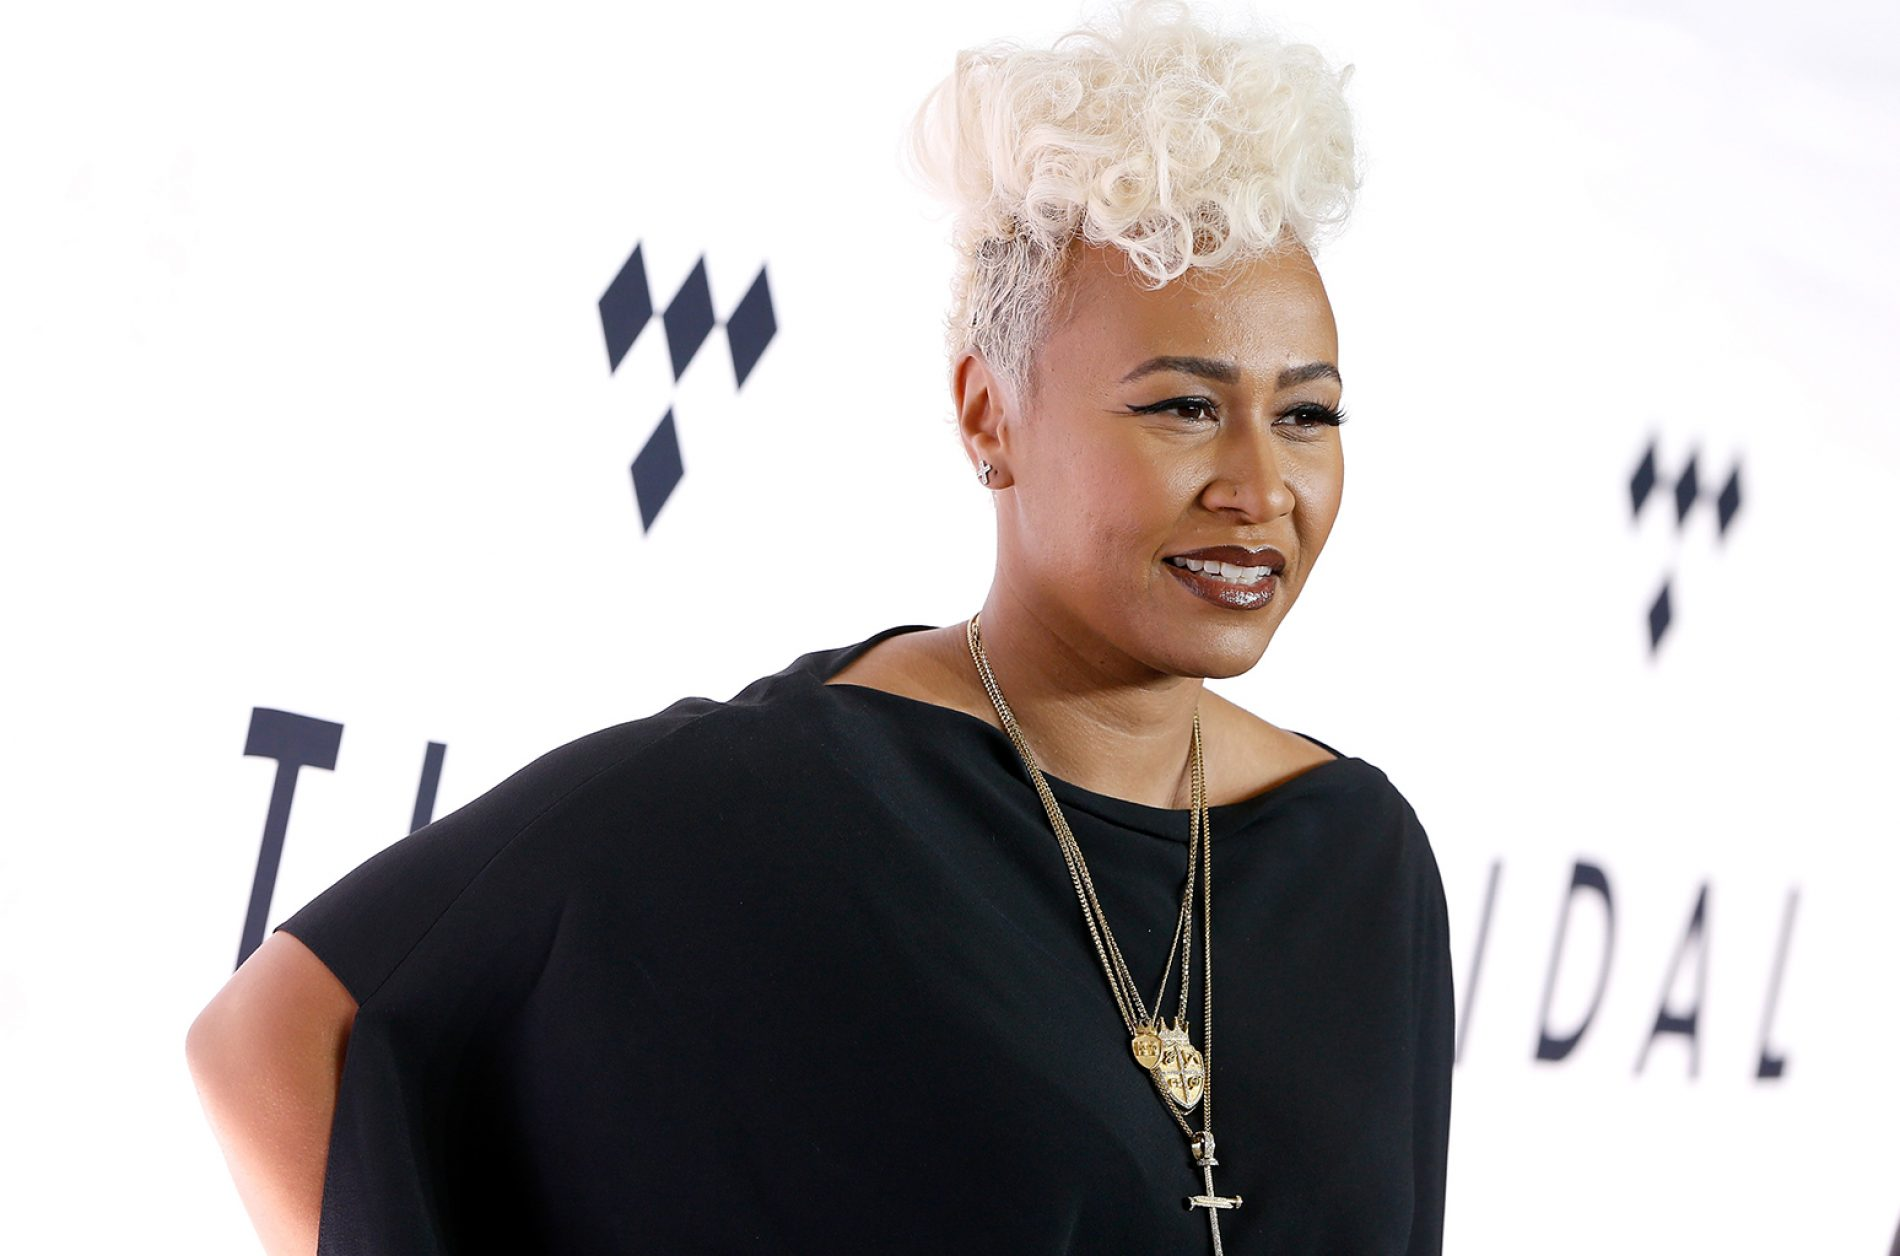 Emeli Sande urges Commonwealth leaders to see LGBT+ people 'as human beings' and overturn anti-gay laws